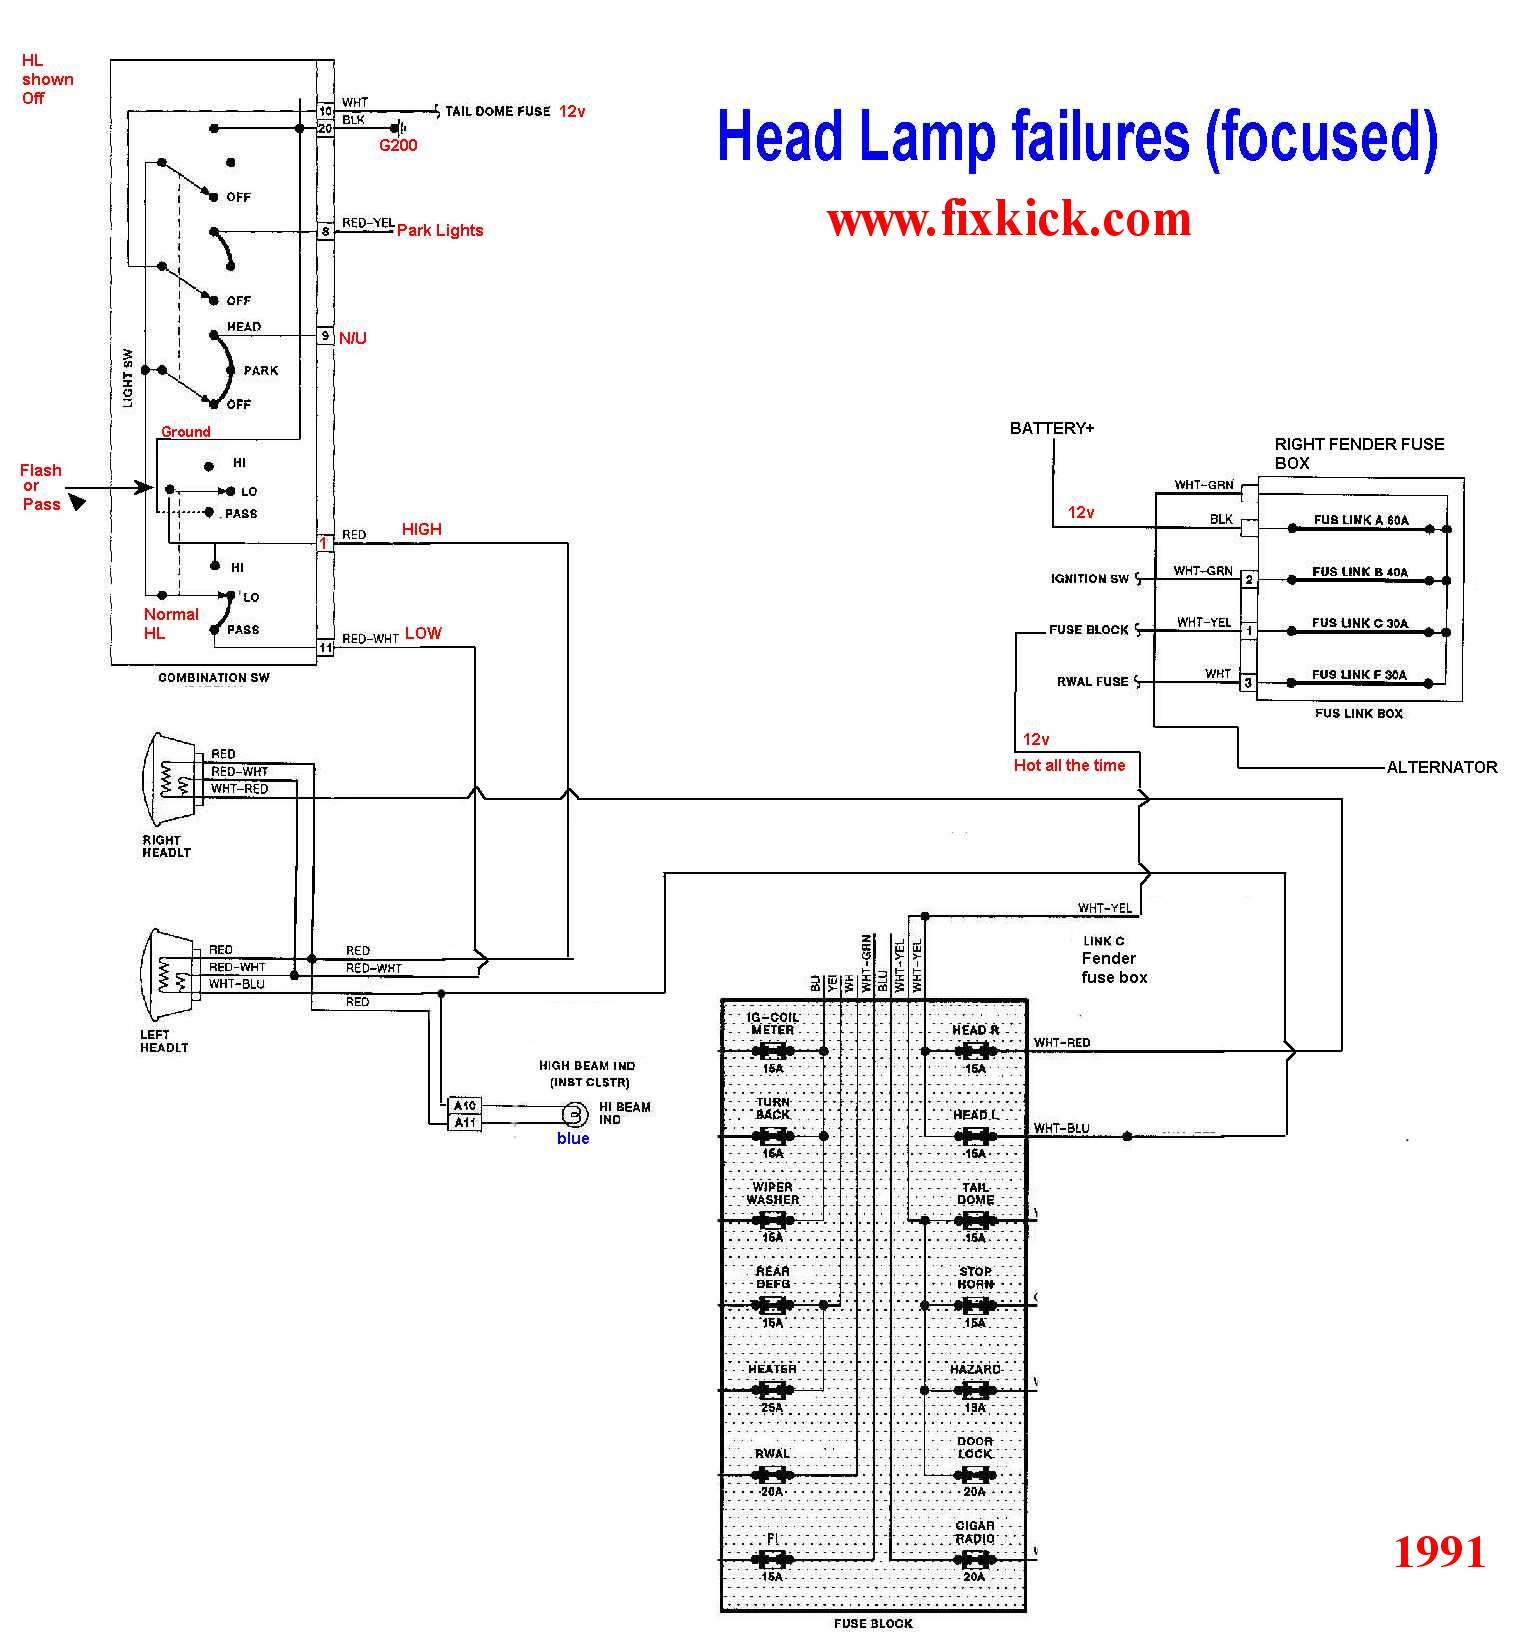 8v Engine Diagram Wiring Library Dictator Ecu The 1991 Unified Head Light Schematic I Made